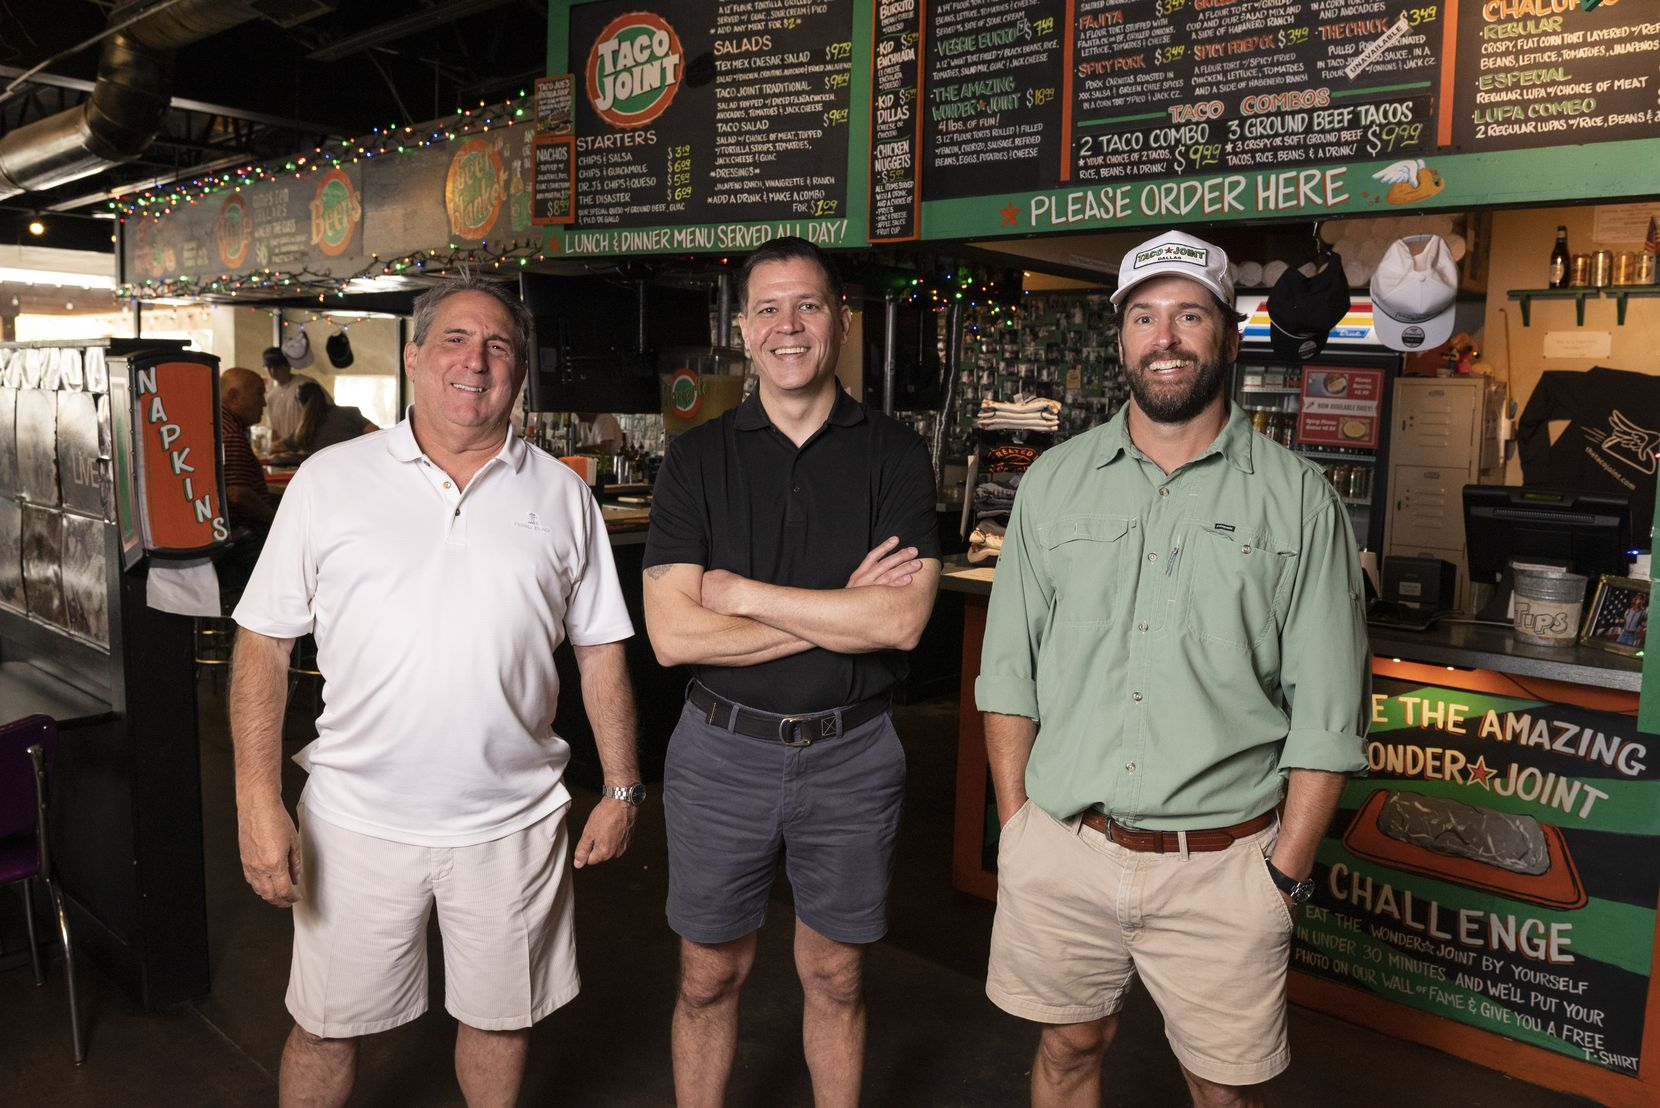 Taco Joint business partners David Catalano, left, Jeffrey Kowitz and Corey McCauley are poised to grow the business in 2021 more than ever before.